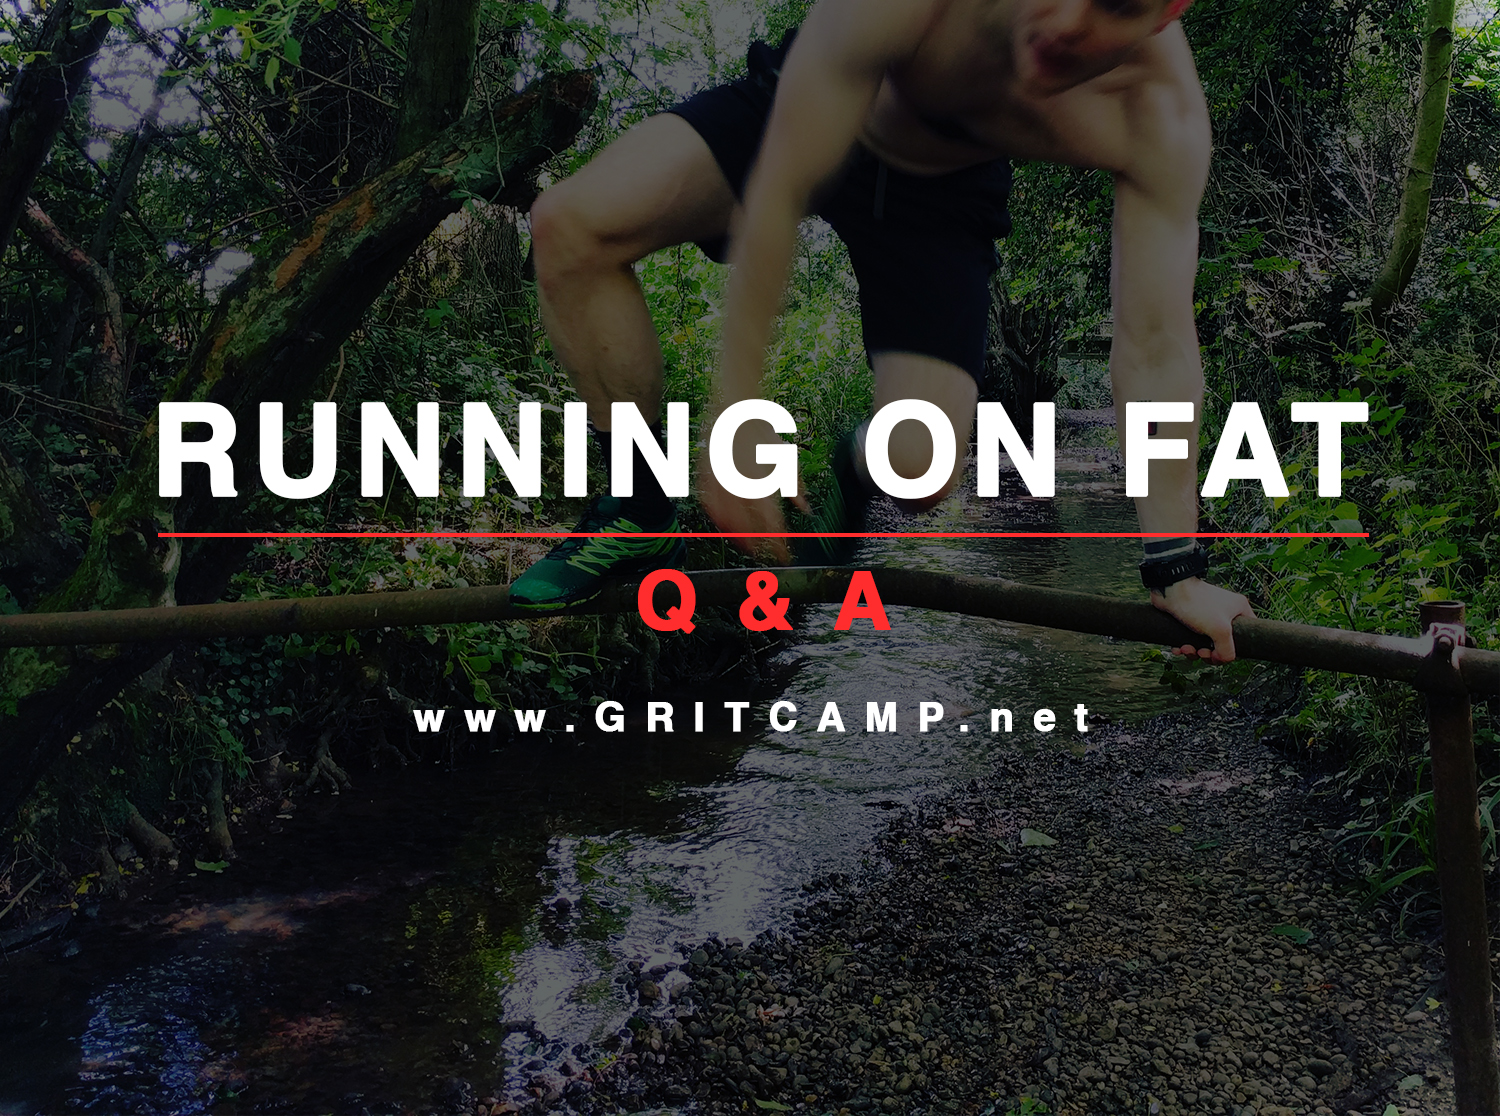 Running on fat: Q&A with V